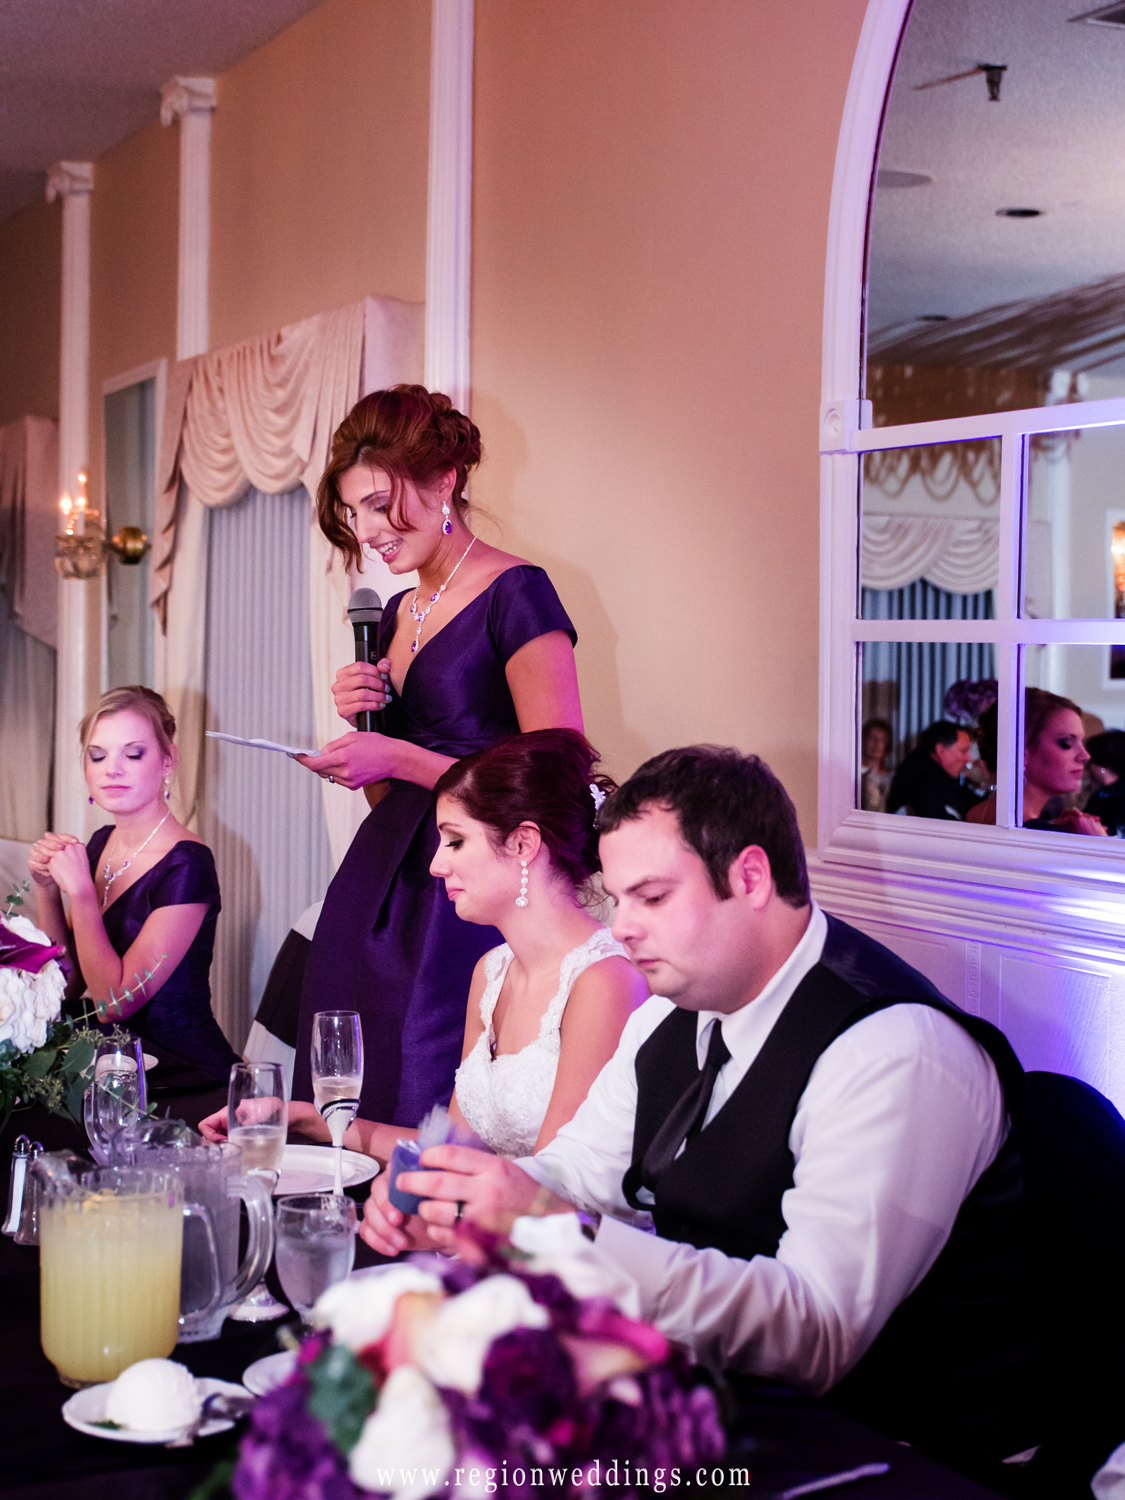 The matron of honor delivers her speech at her sister's wedding reception at Dream Palace.